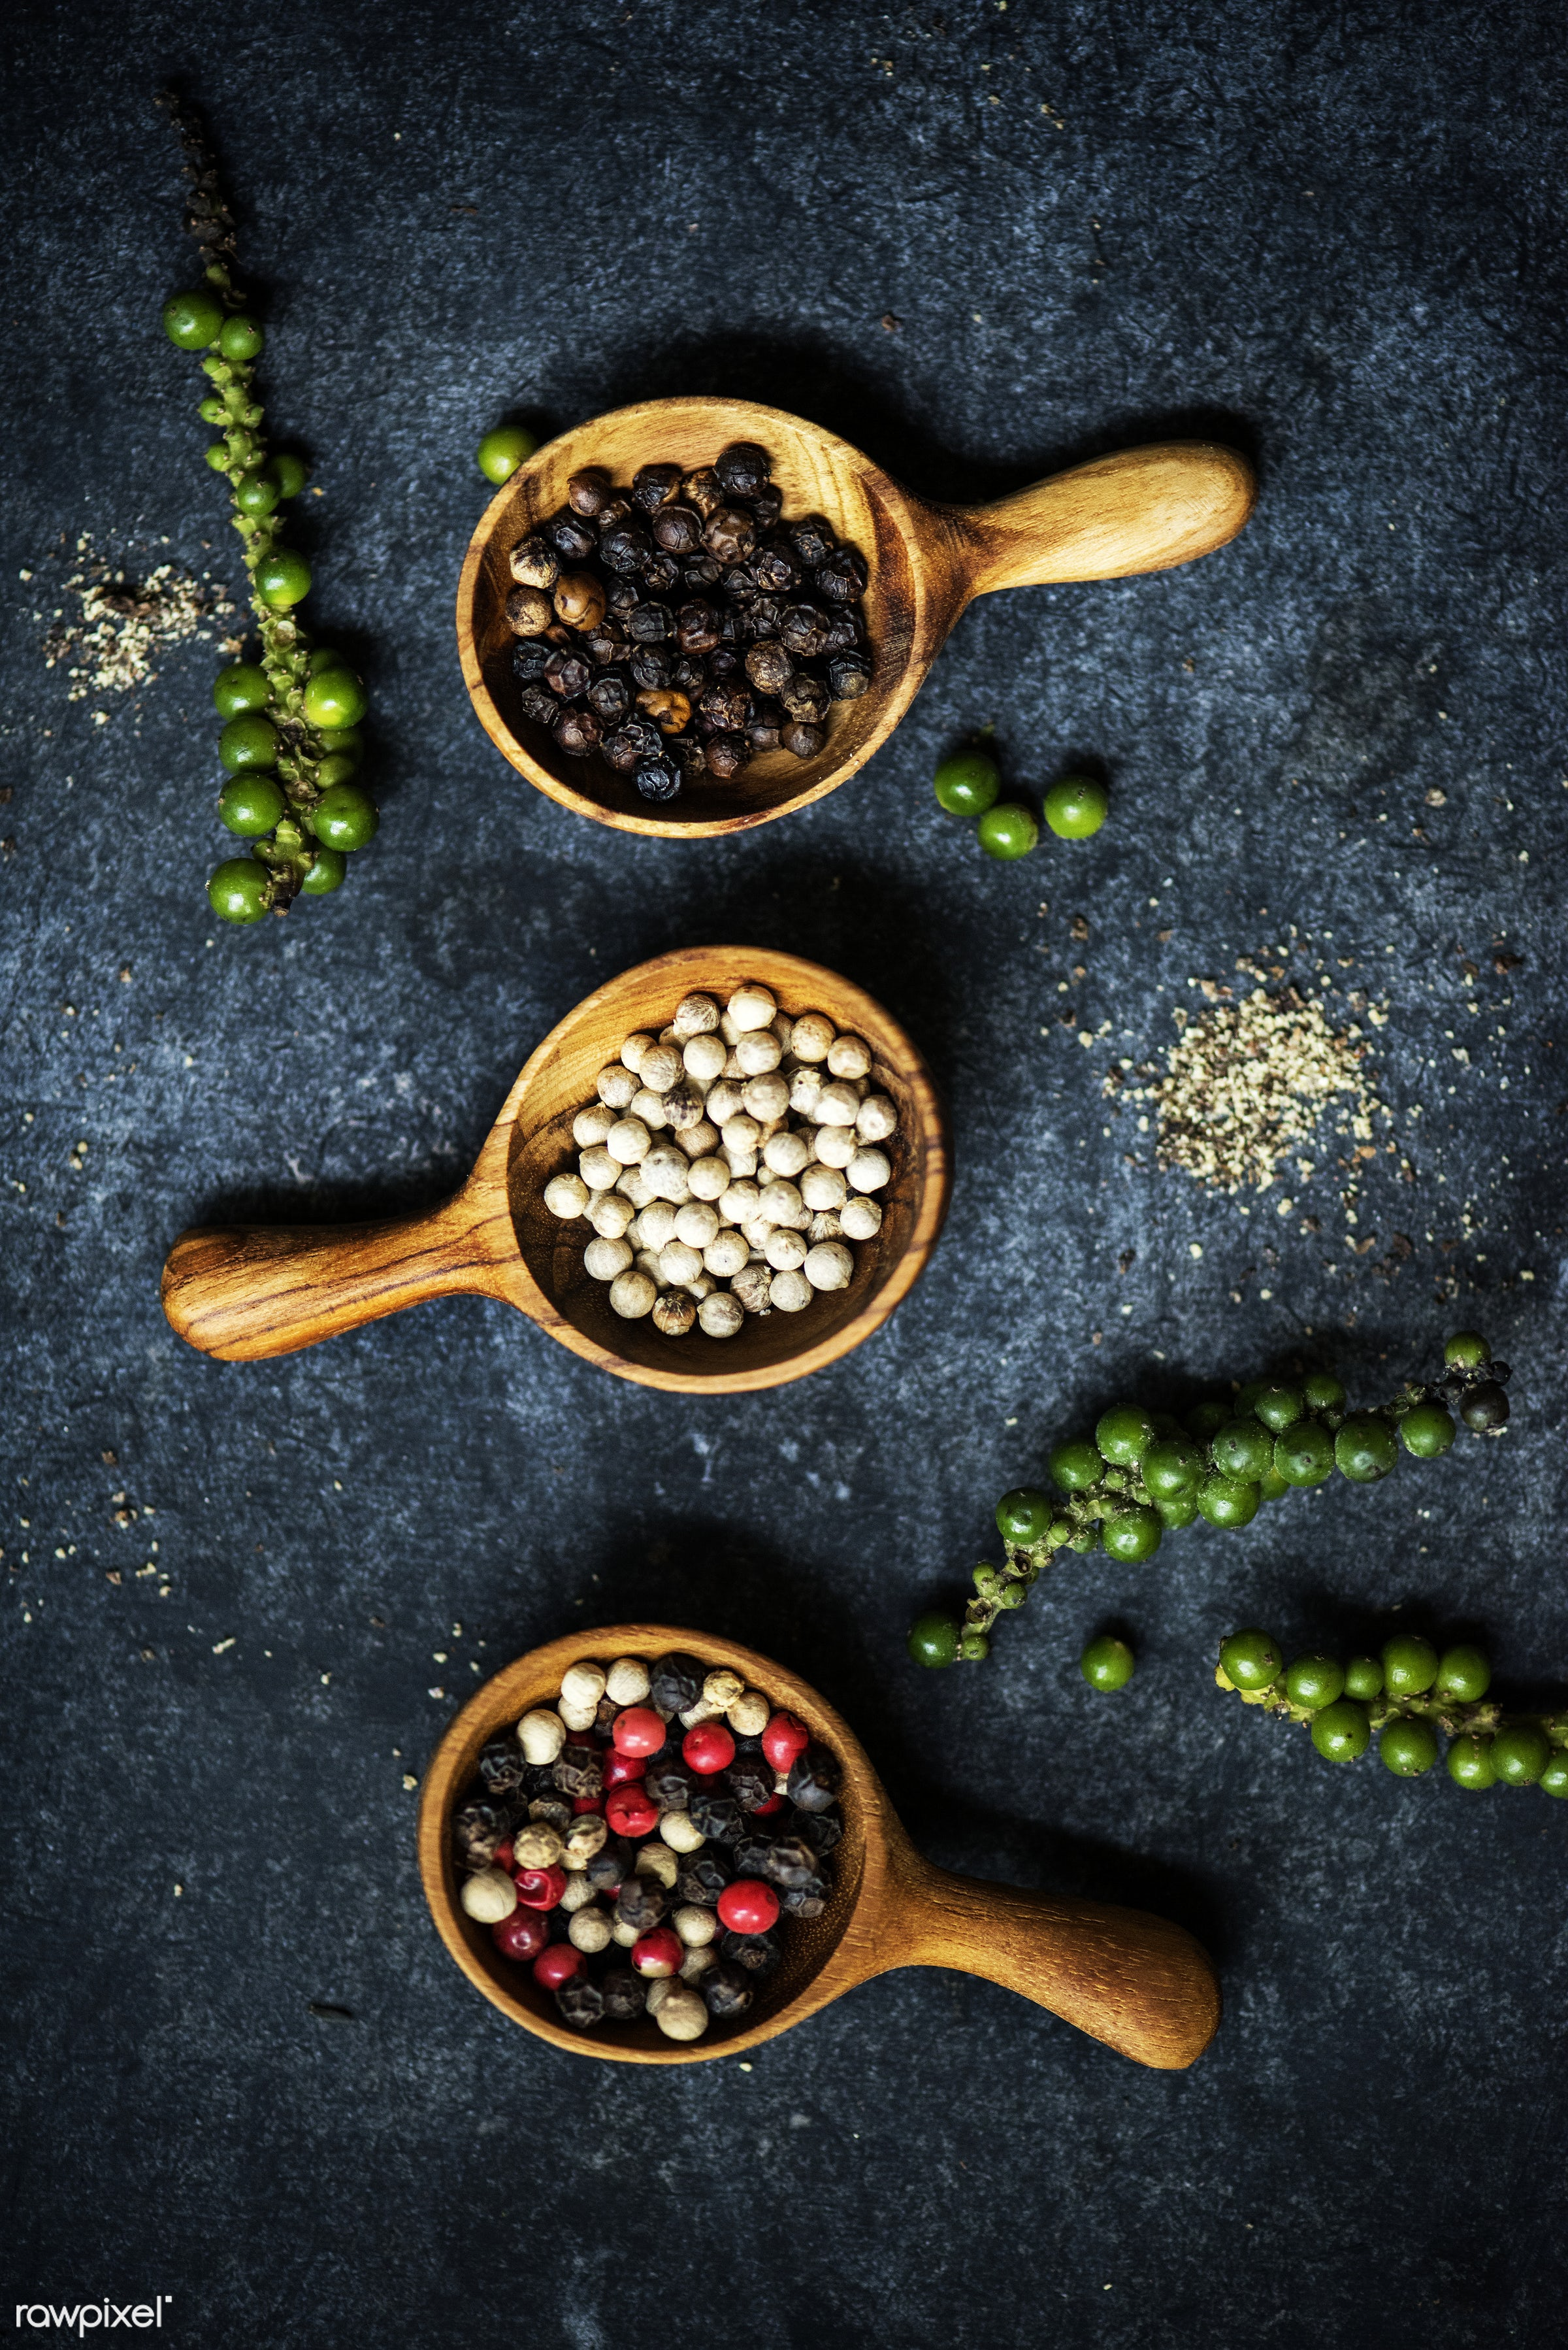 chili pepper, nobody, dry, spoon, spices, asian, white pepper, ingredients, real, seasoning, herb, peppercorns, background,...